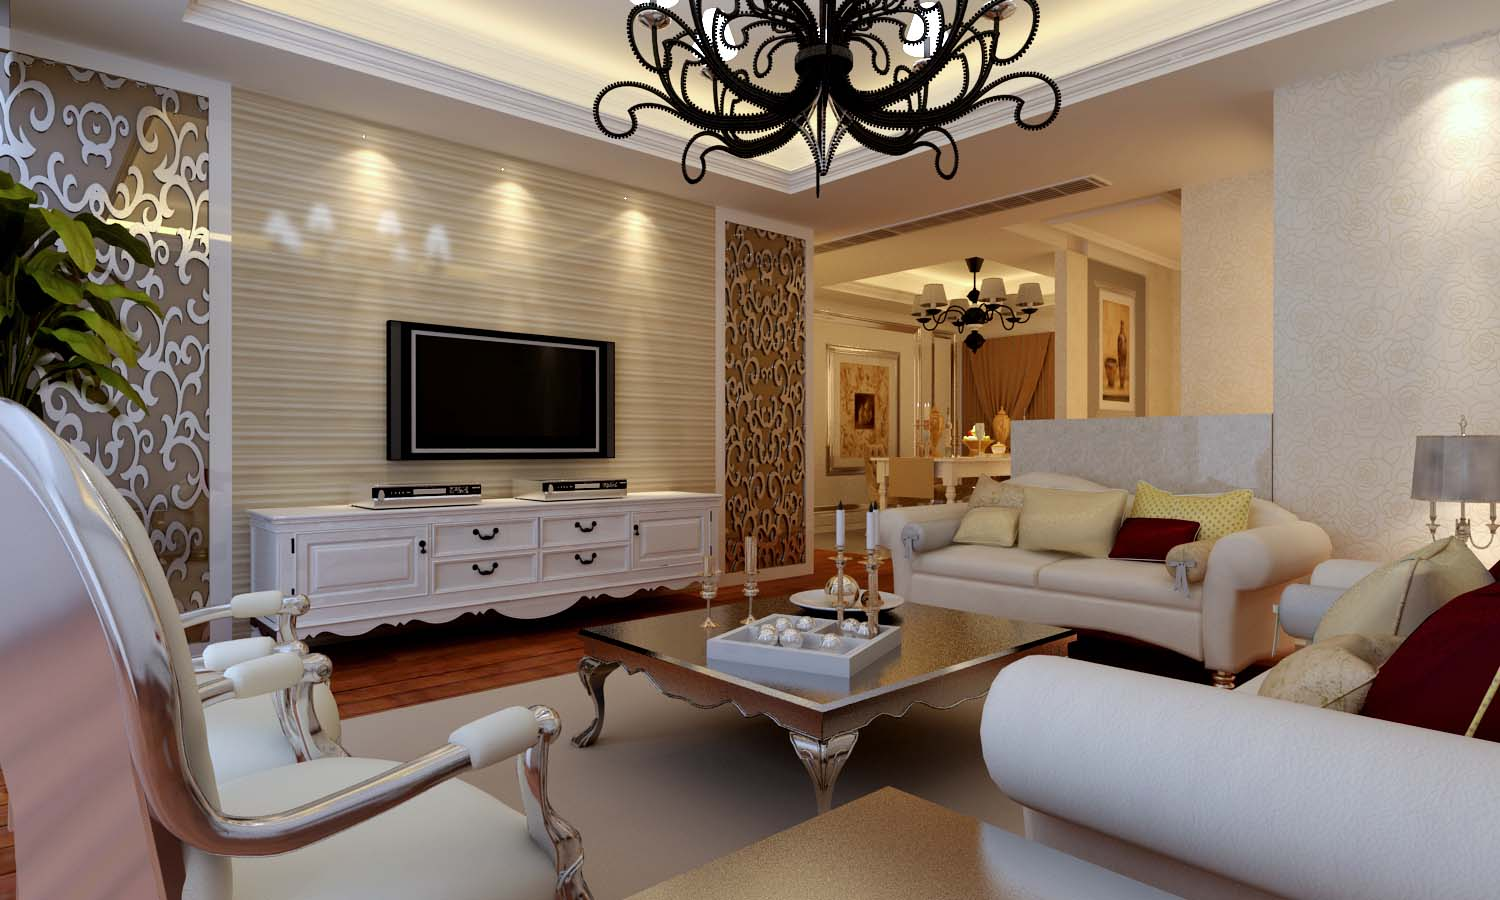 Living Room Model 3d royal living room with white furniture | cgtrader